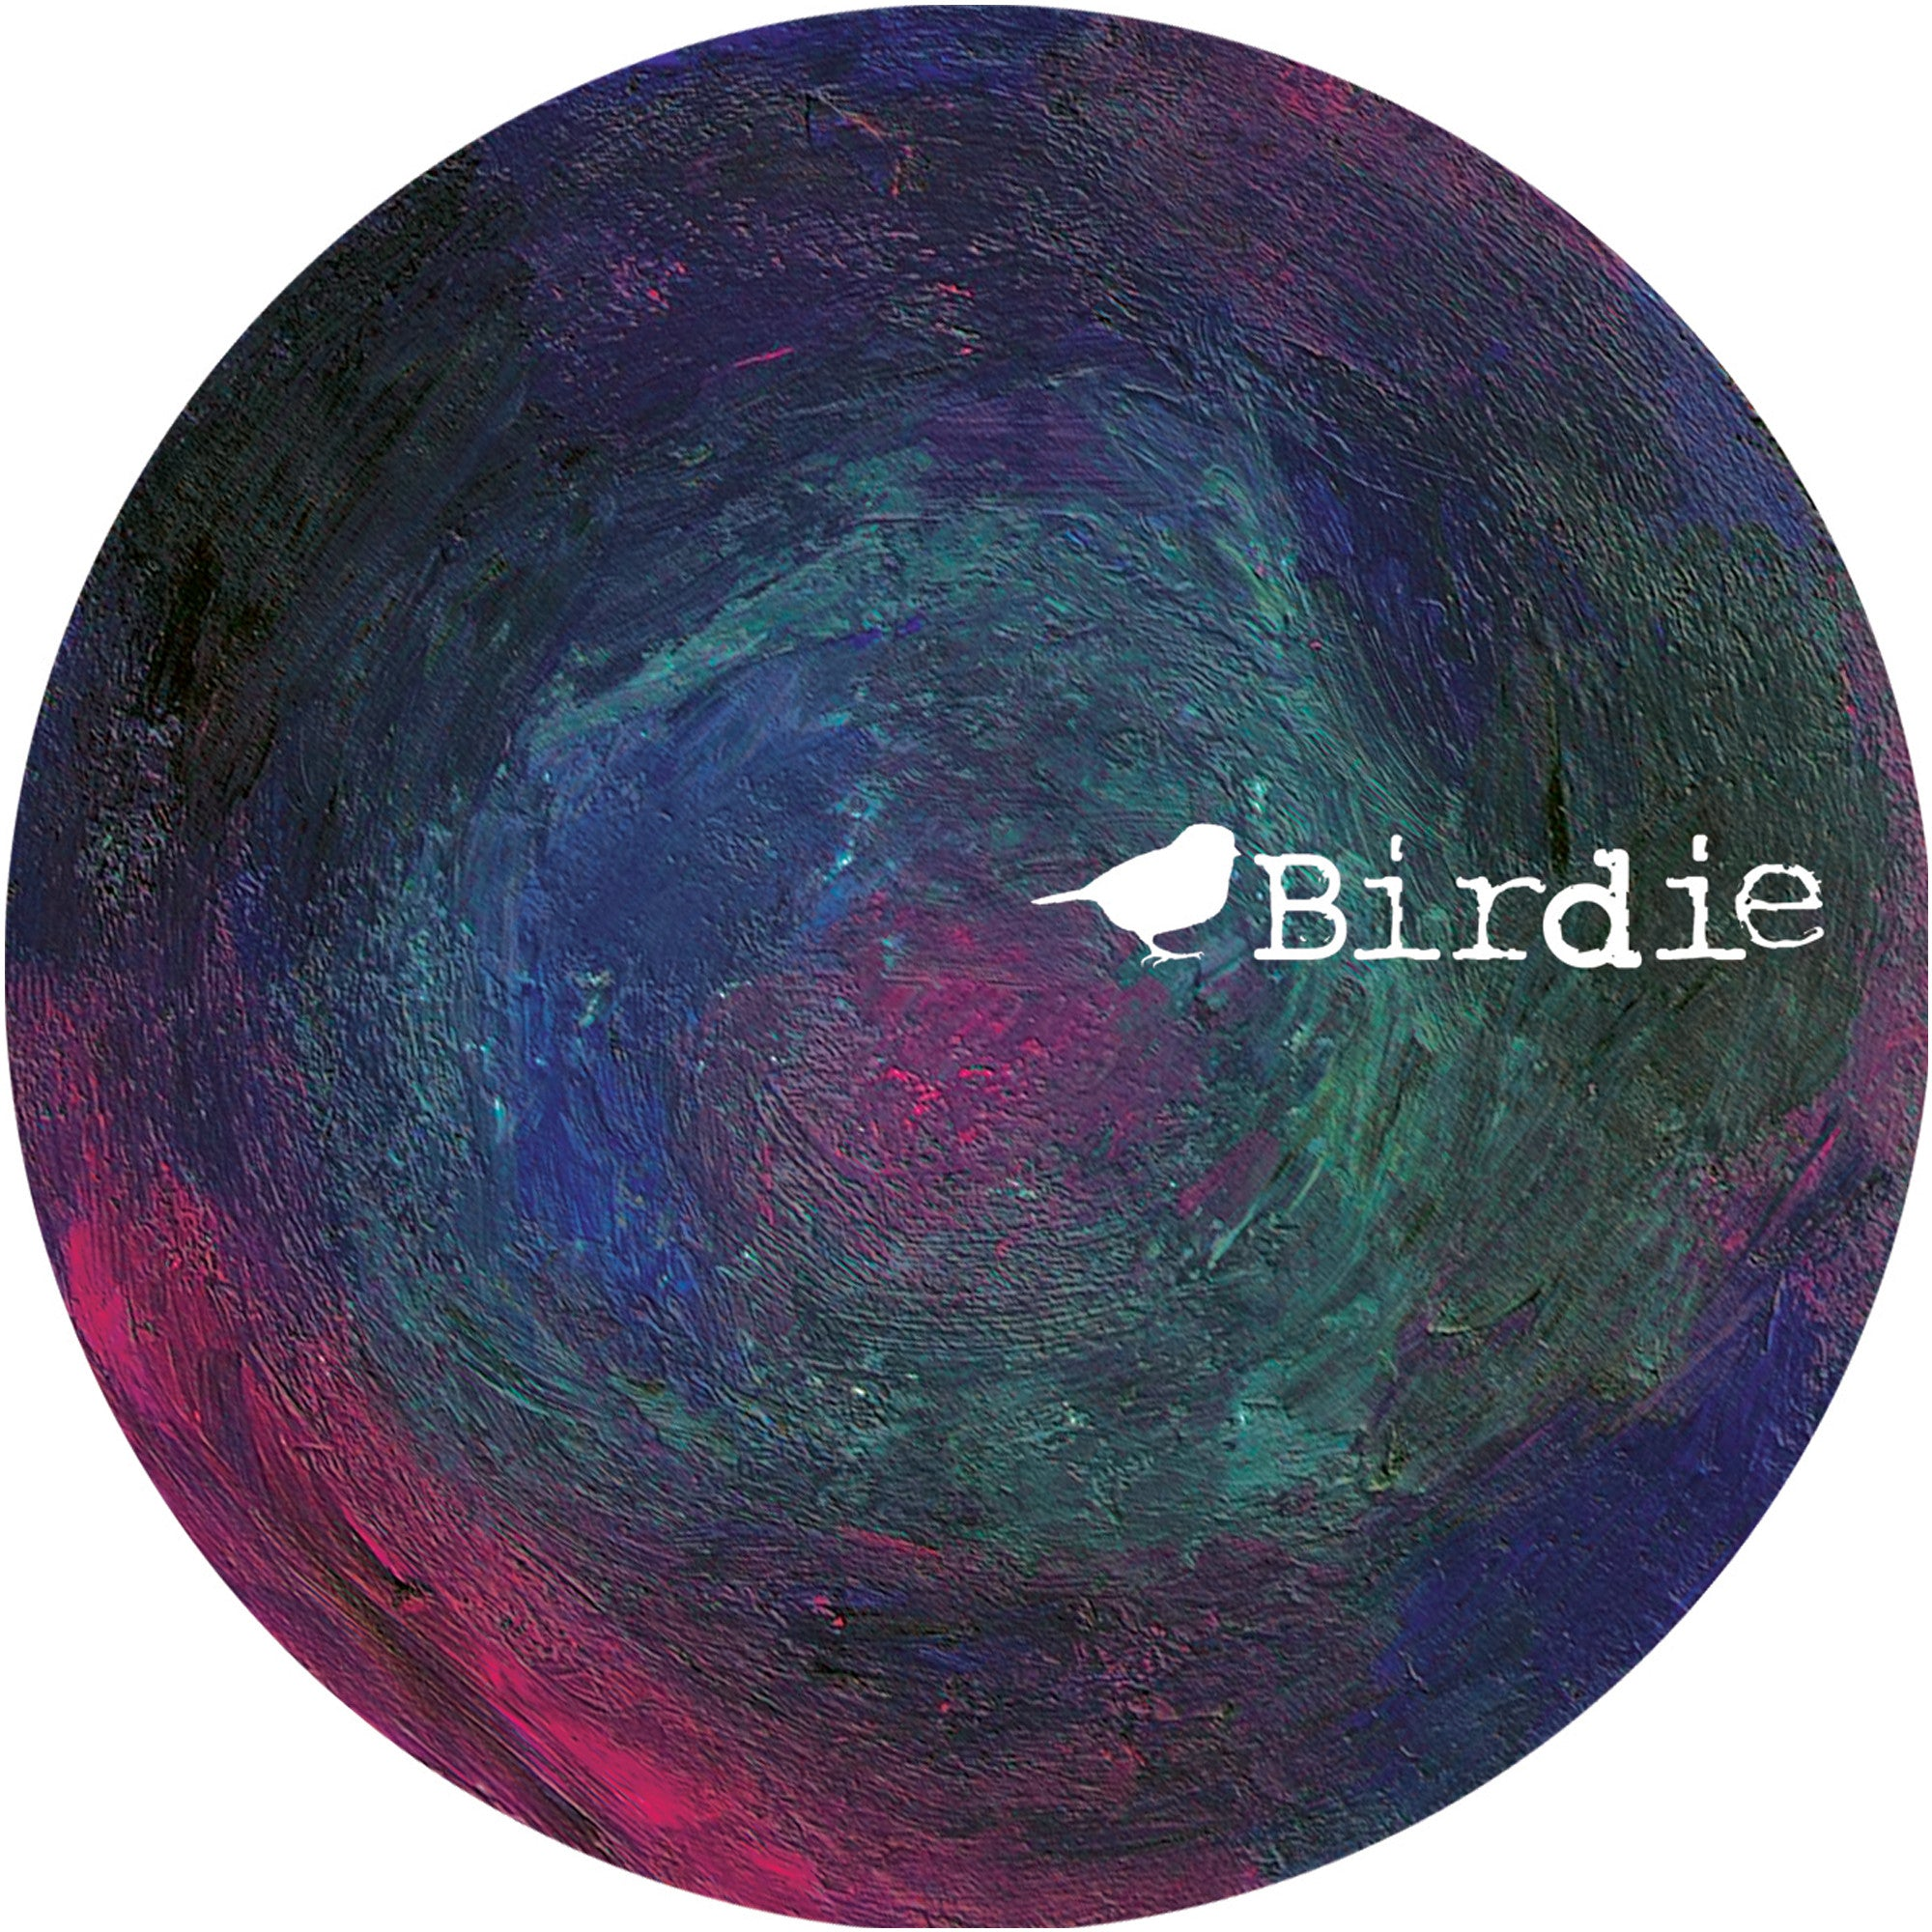 BIRDIE04 - Various Artists EP - Unearthed Sounds